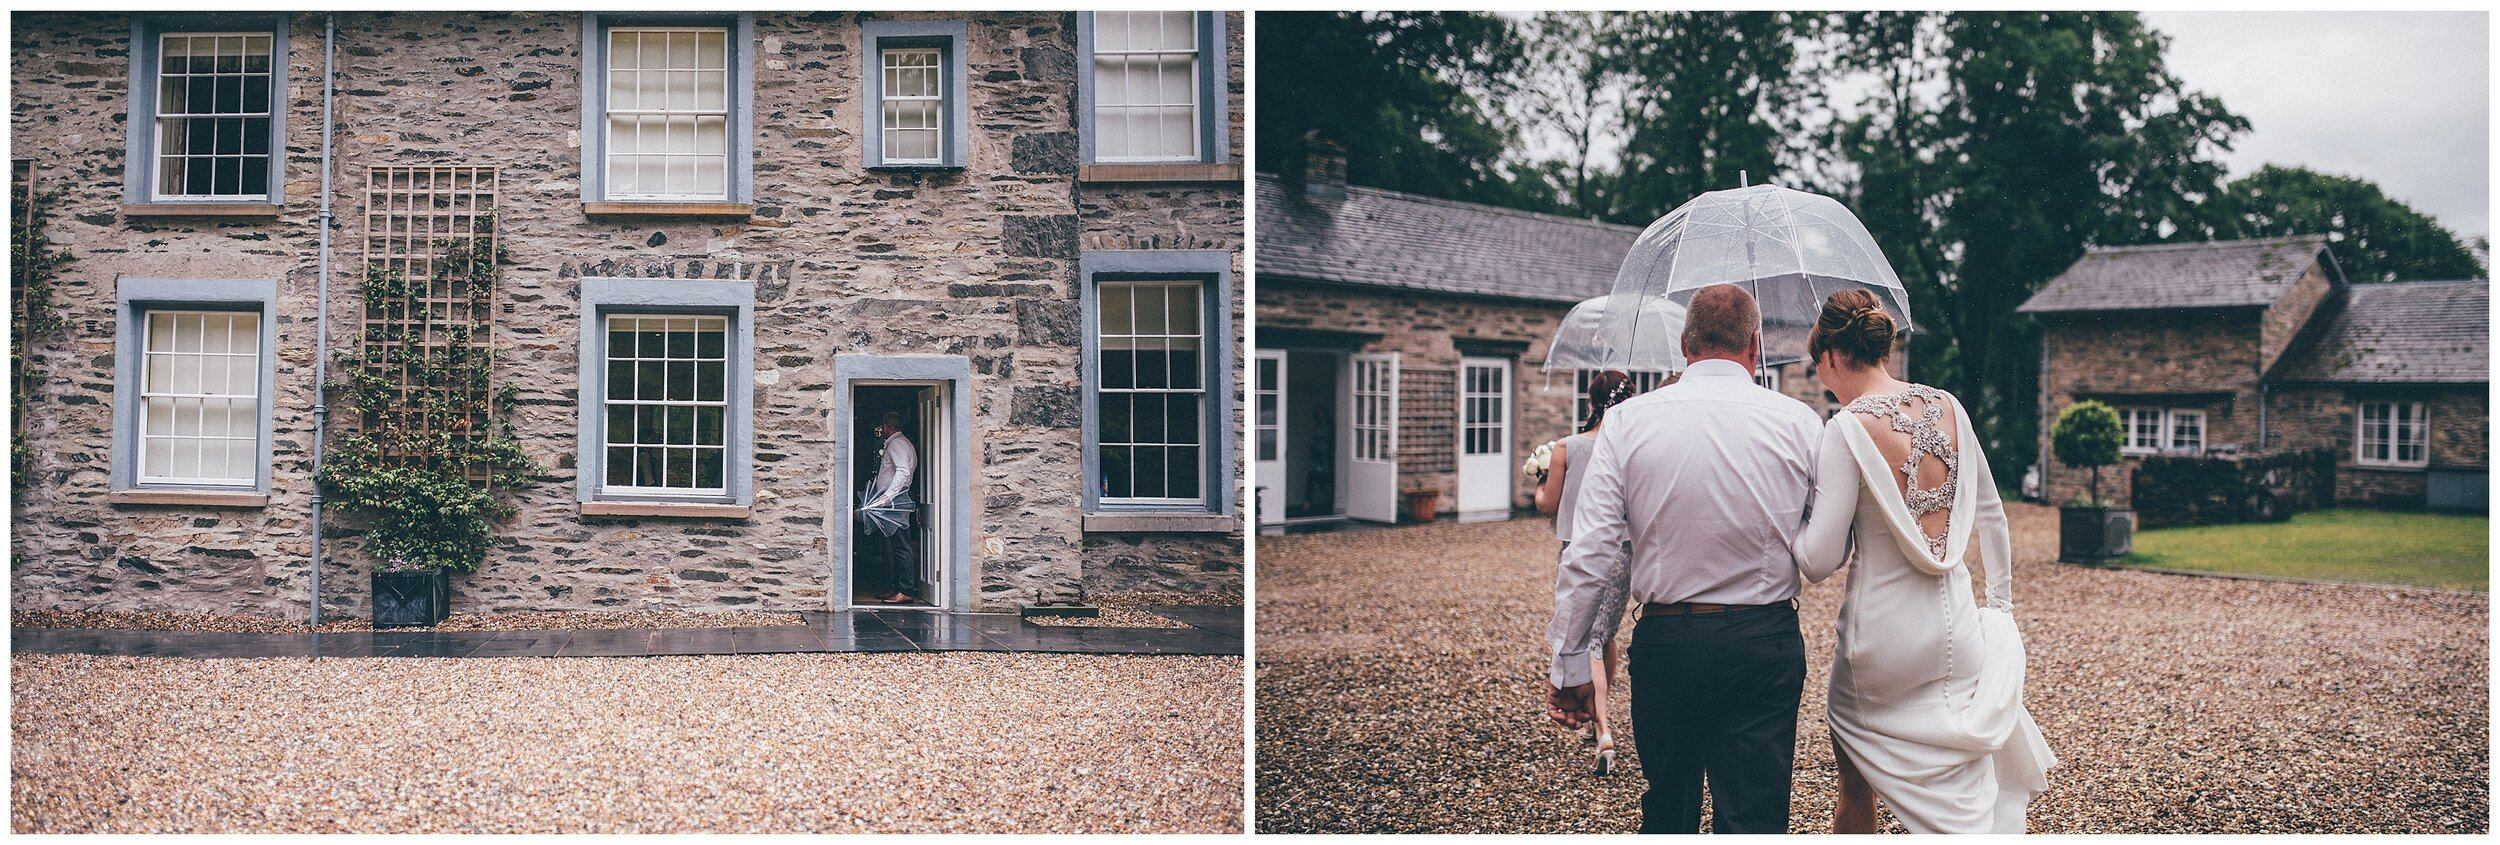 The bride and her dad walk across to the wedding ceremony at Silverholme Manor in the rain.